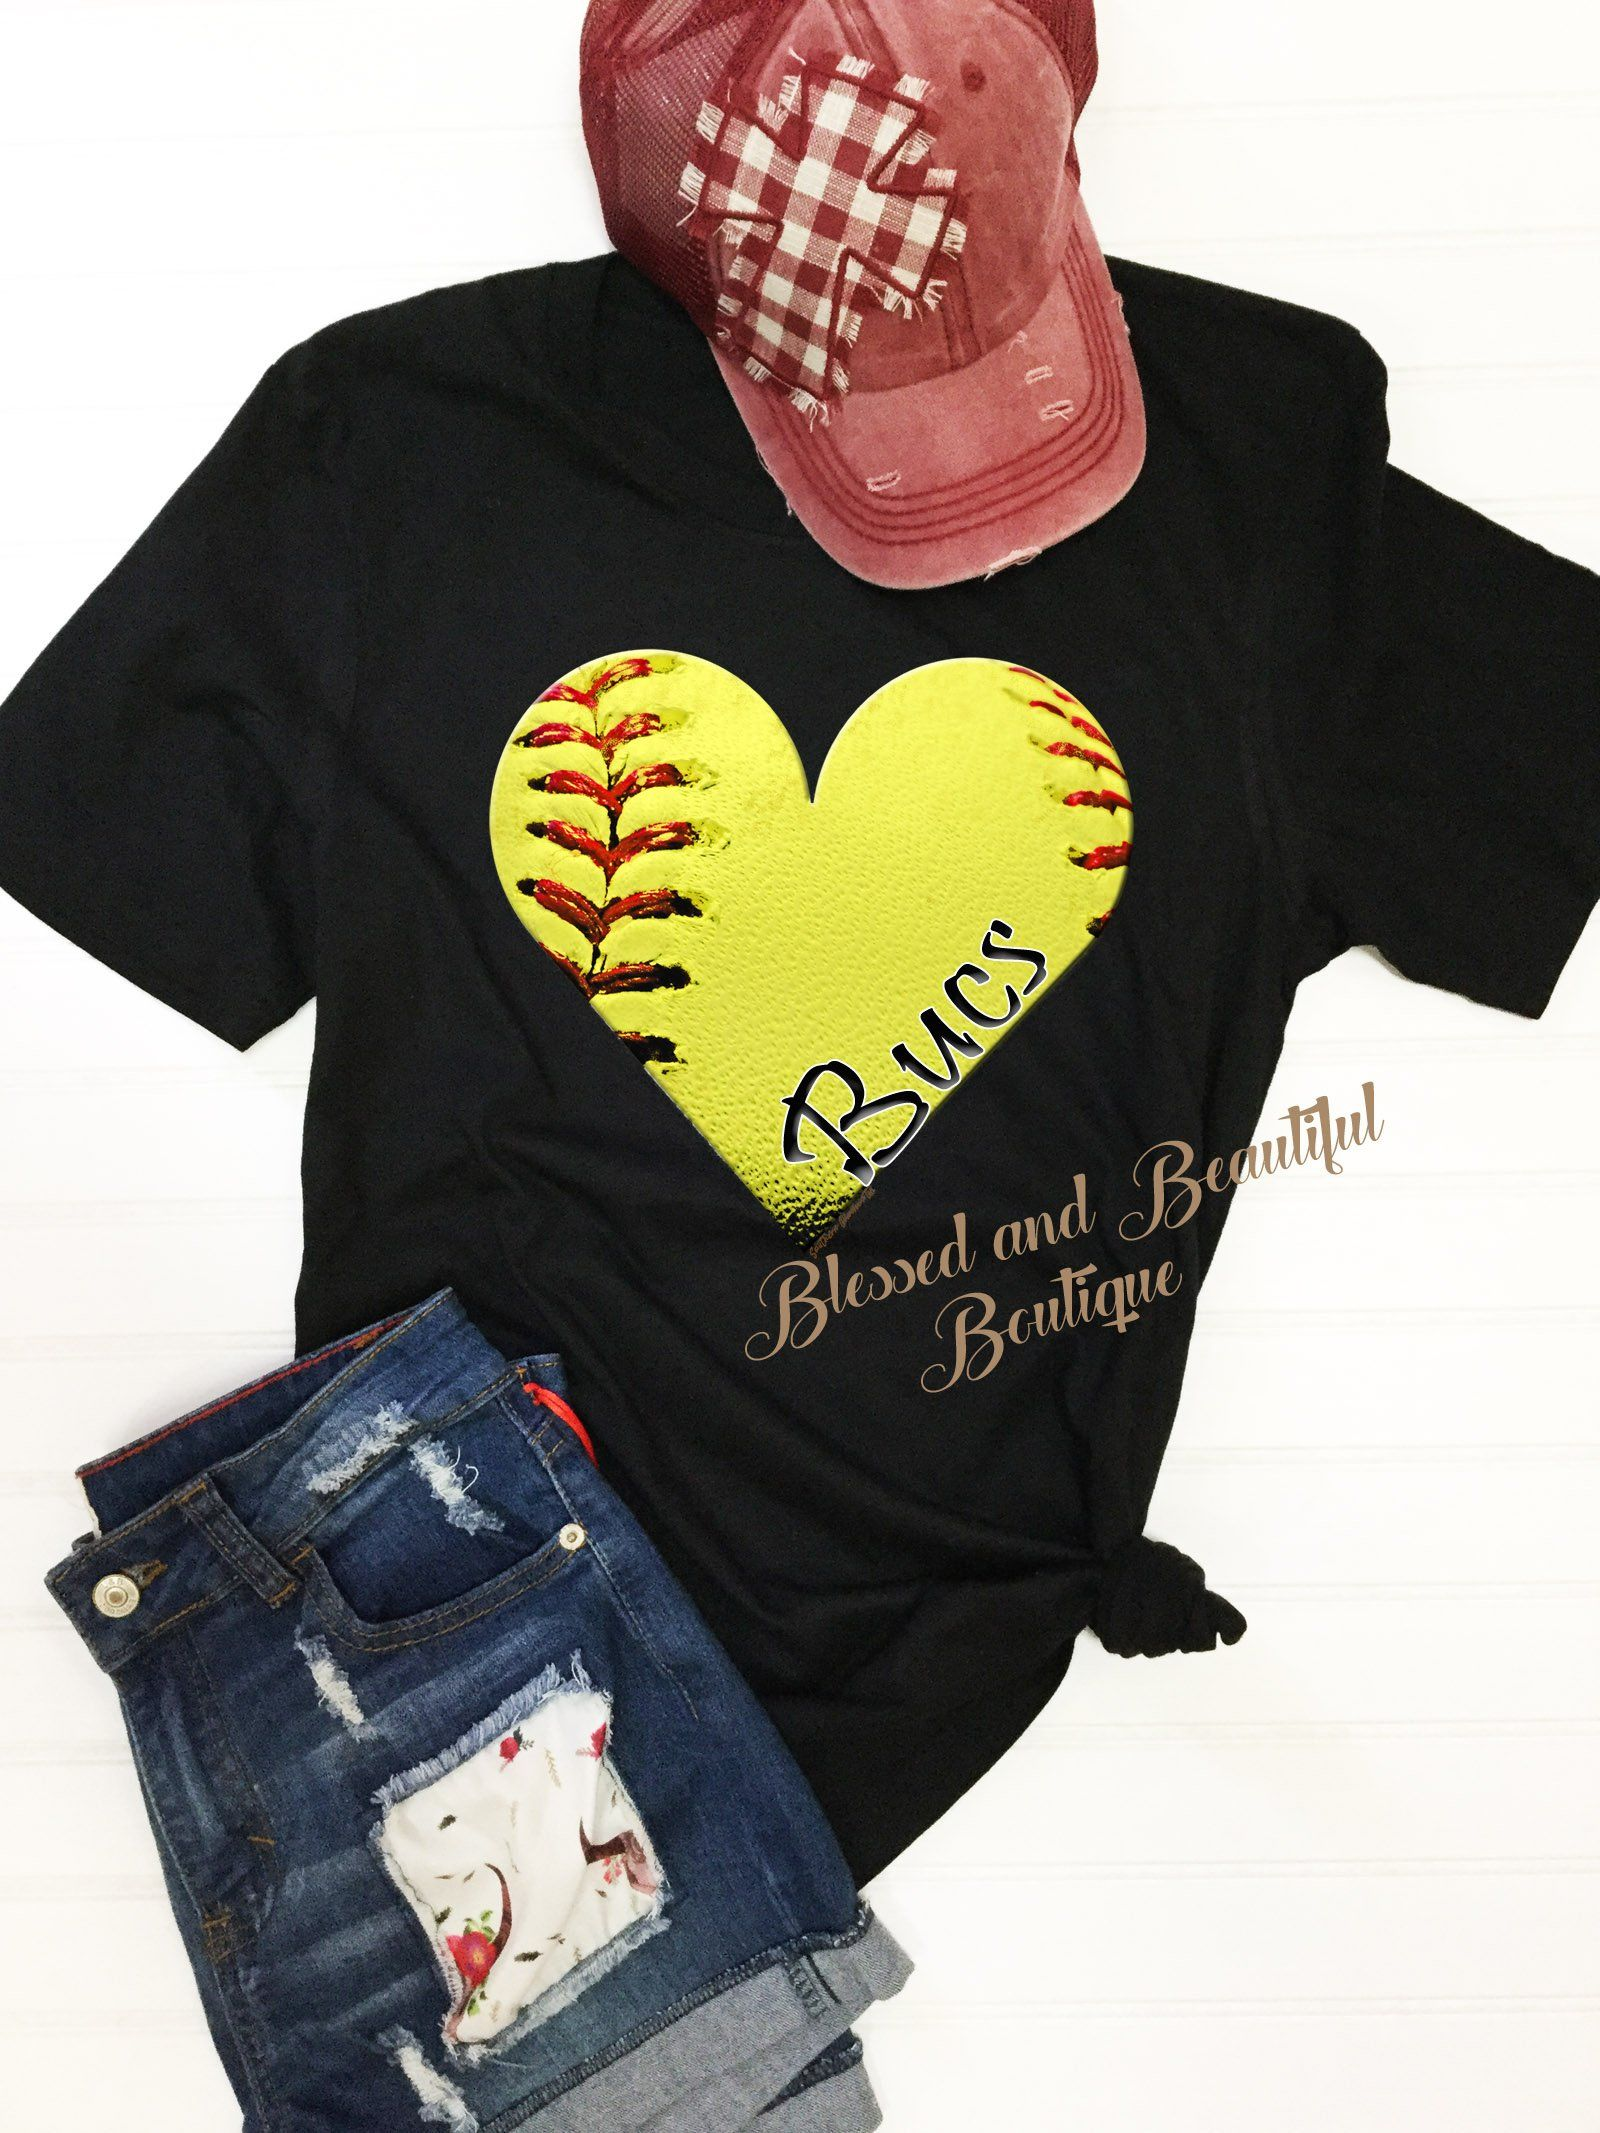 For the Love of Softball - Top Perfect shirt to show your ...